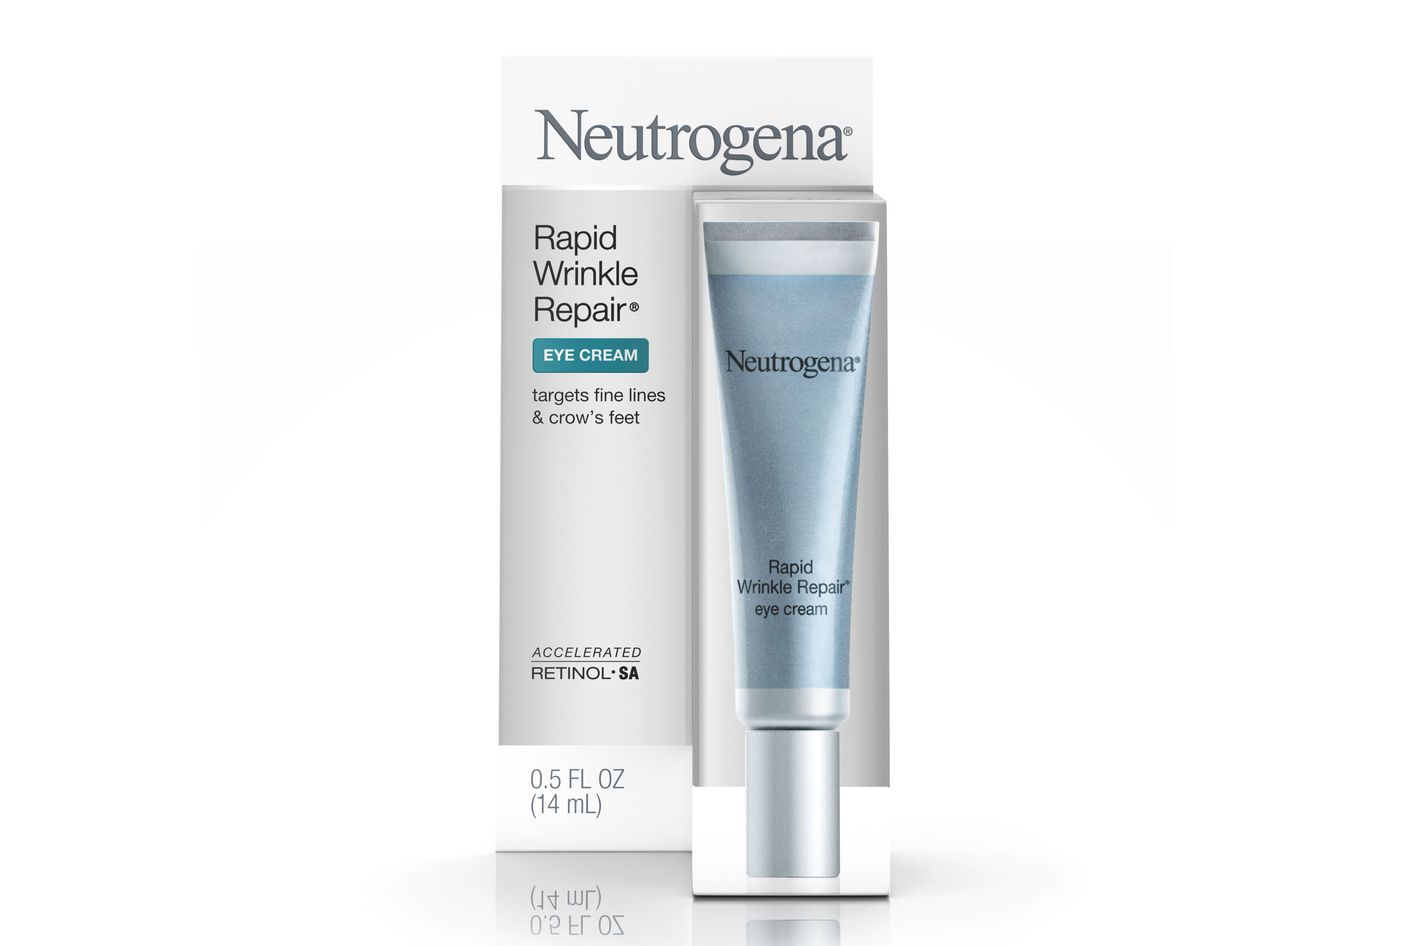 Neutrogena Rapid Wrinkle Repair Eye